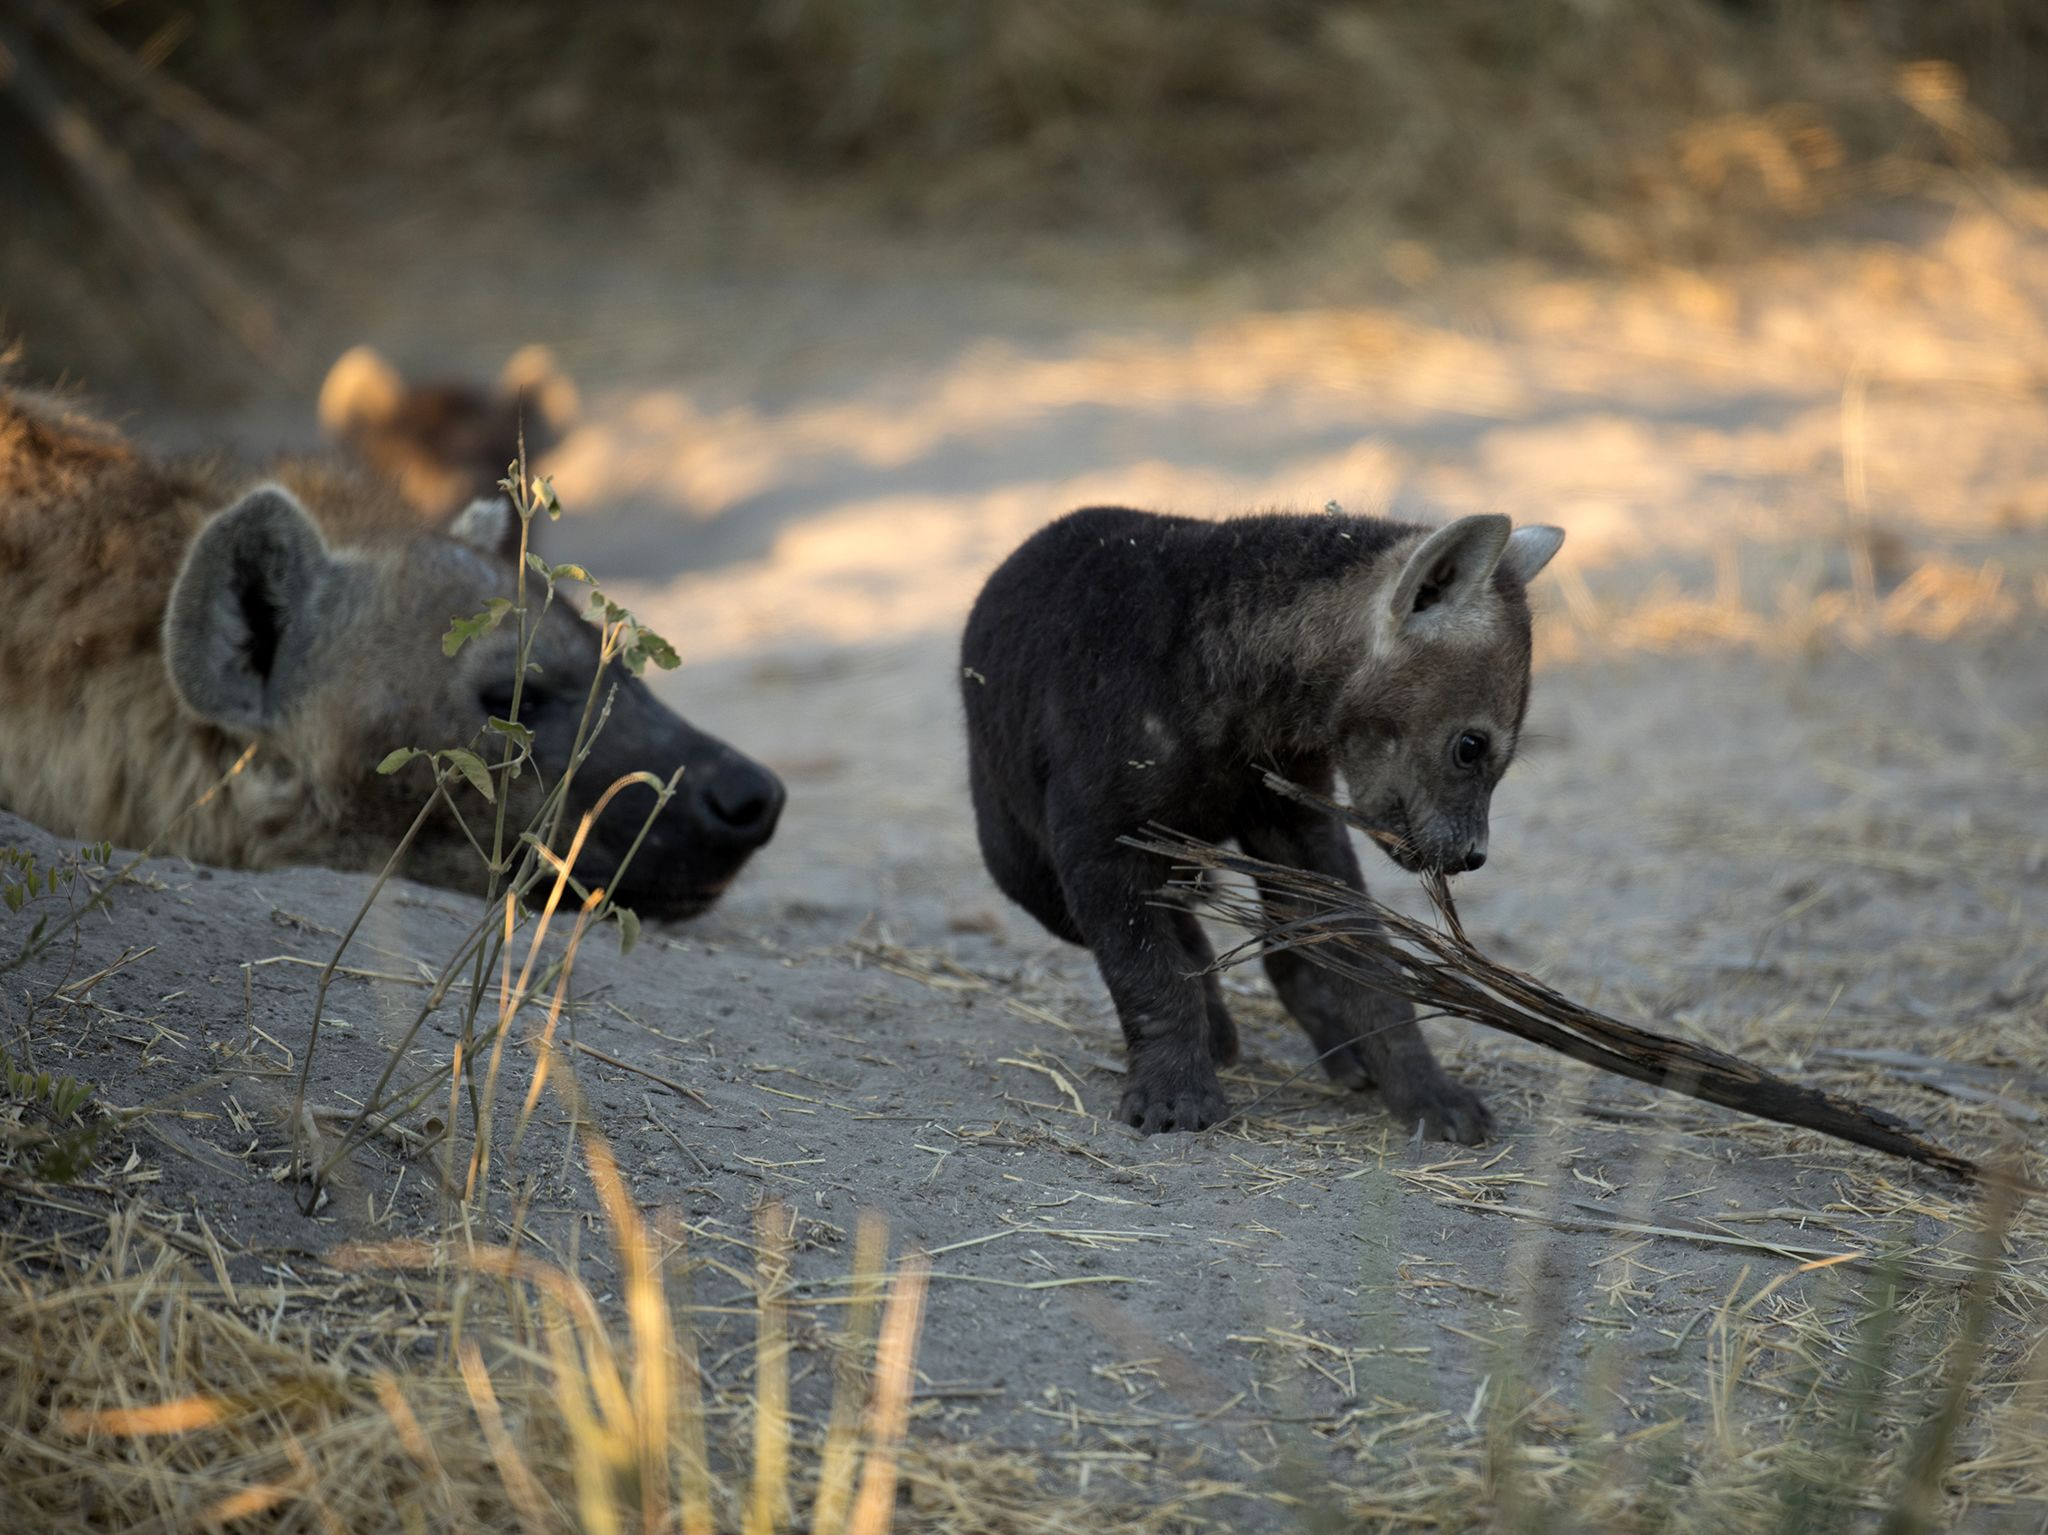 Moremi Game Reserve, Okavango Delta, Botswana:  A hyena cub plays with foliage at the den as an... [Photo of the day - June 2020]